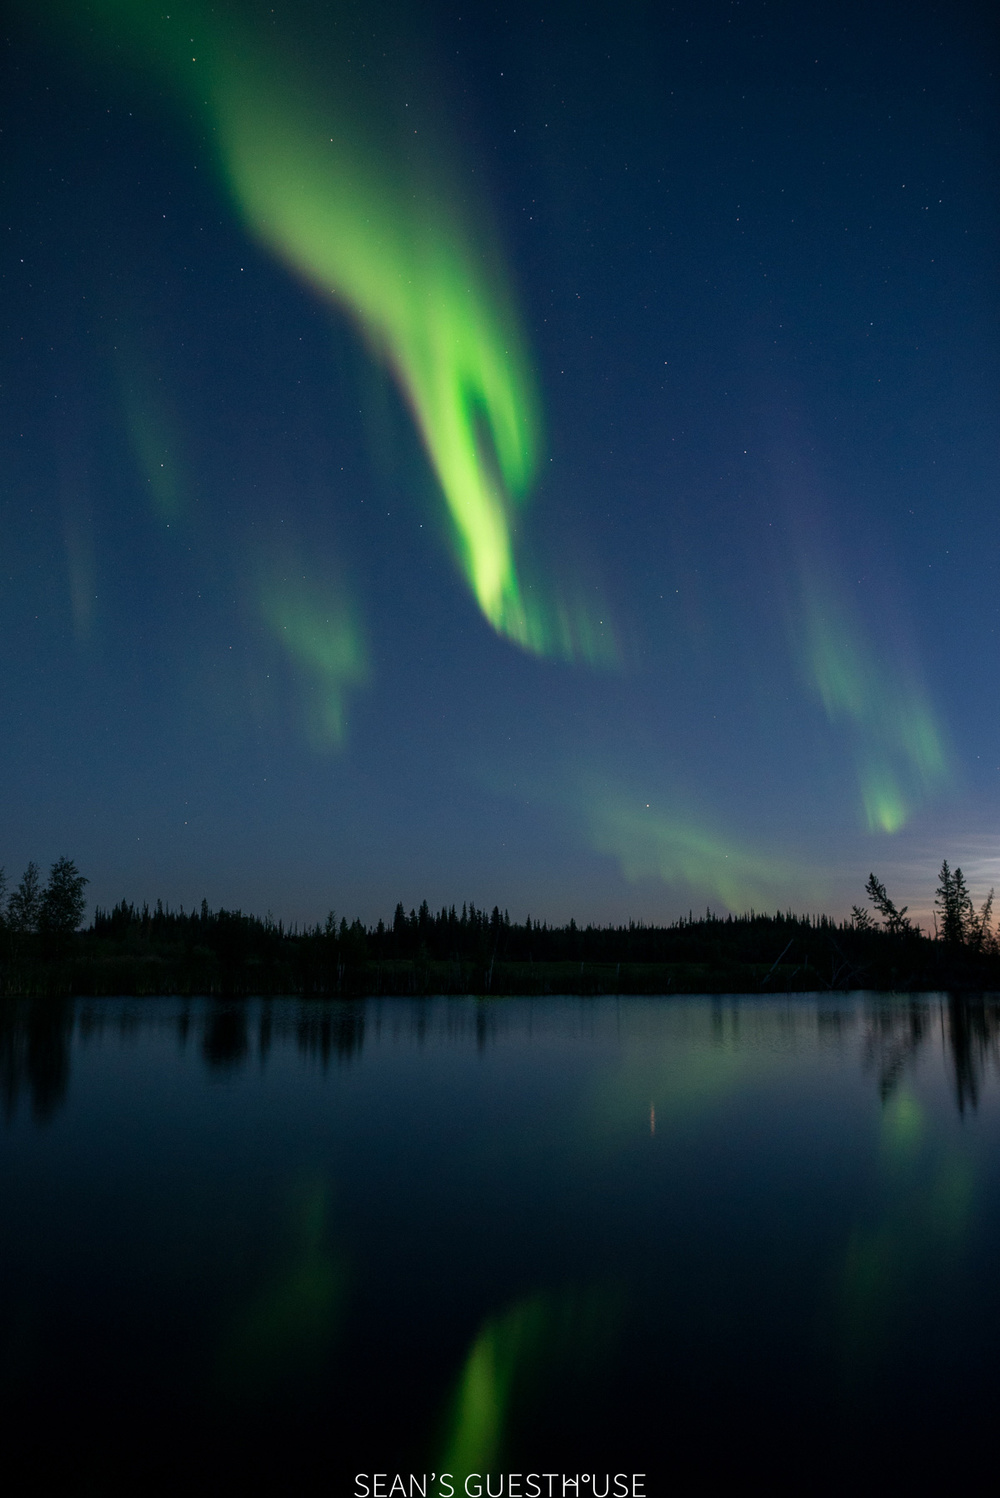 Sean's Guesthouse - Yellowknife Northern Lights Tour - August Aurora - 7.jpg